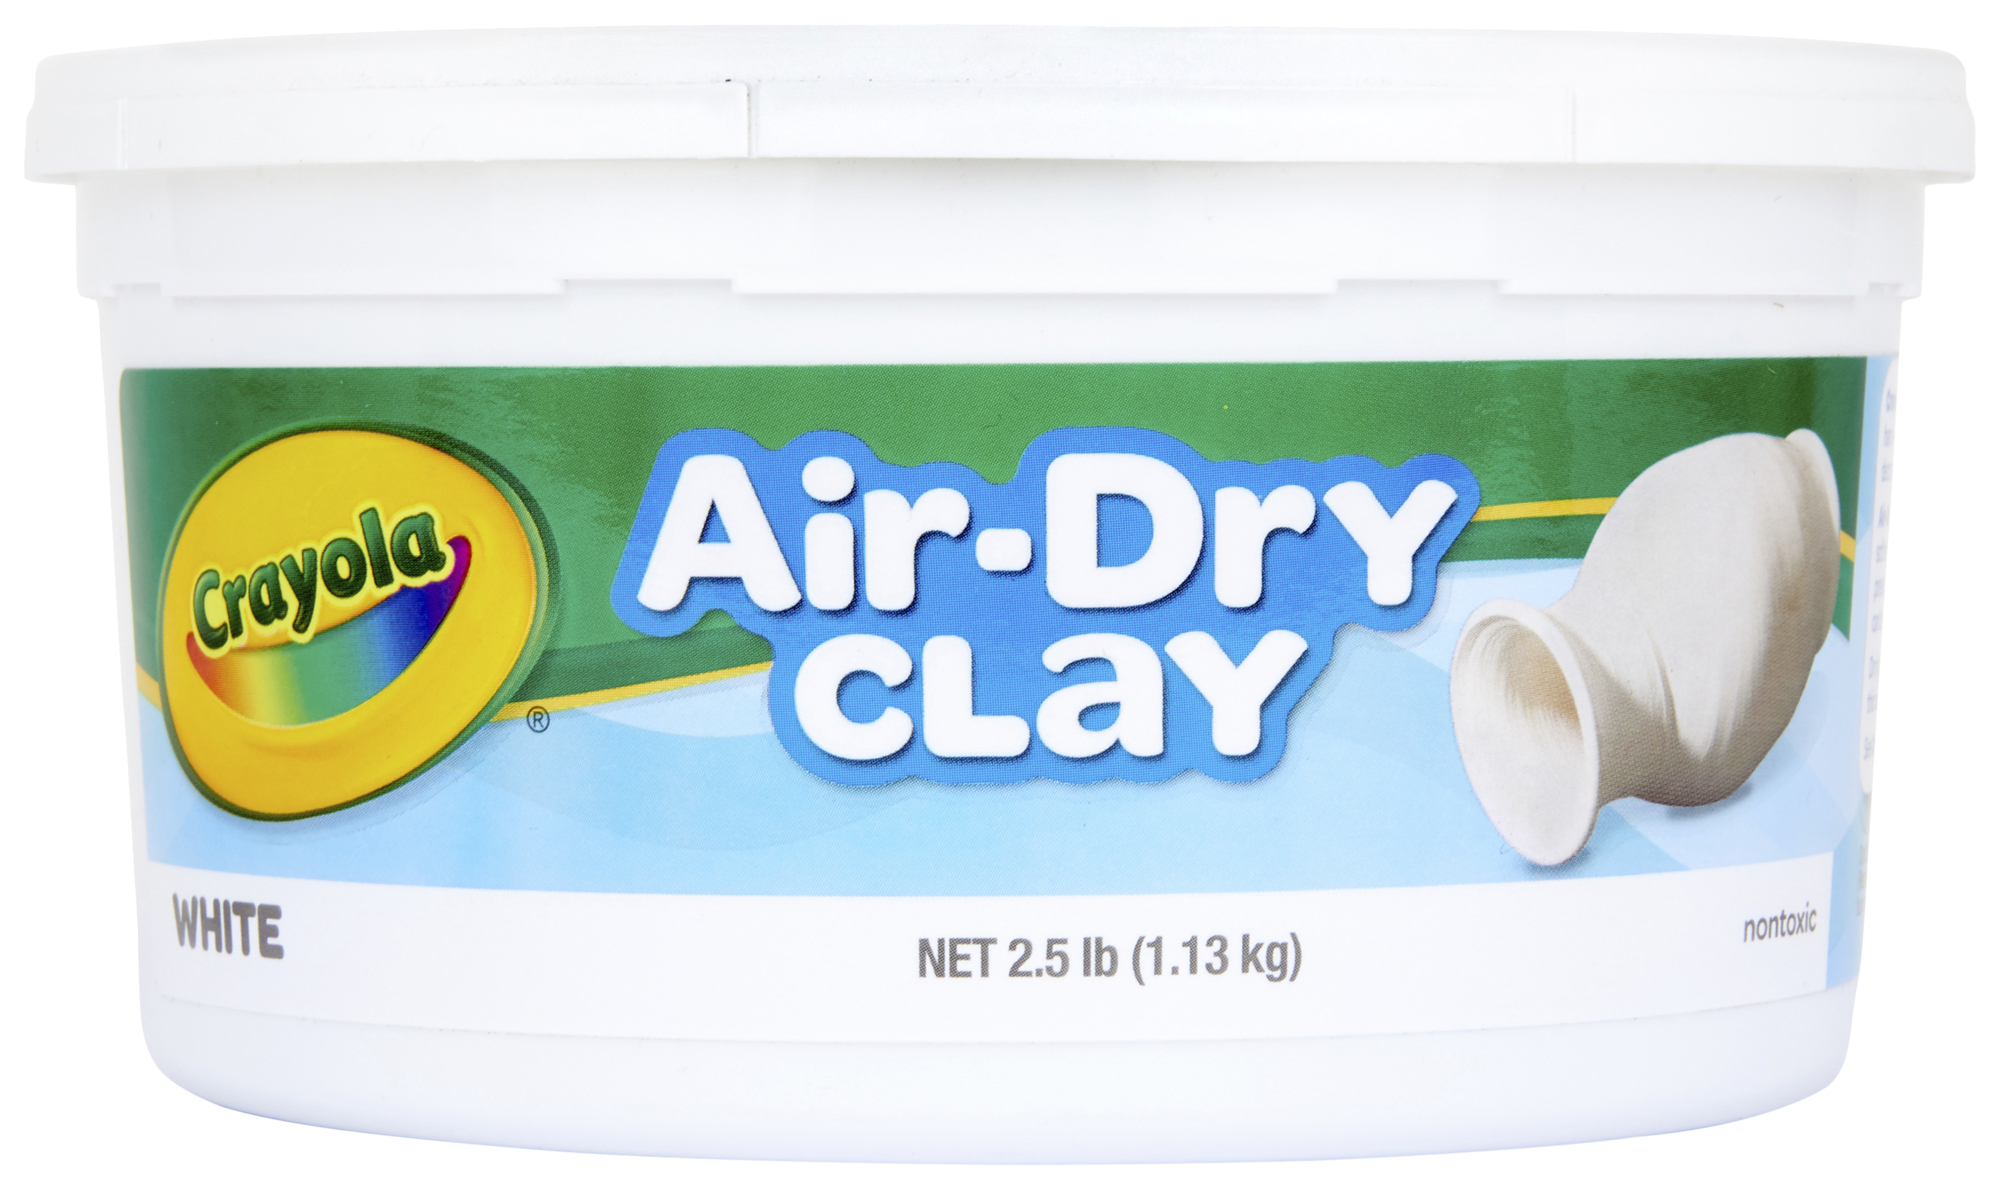 Crayola Air-Dry Clay, White, 2.5 Lb Resealable Bucket